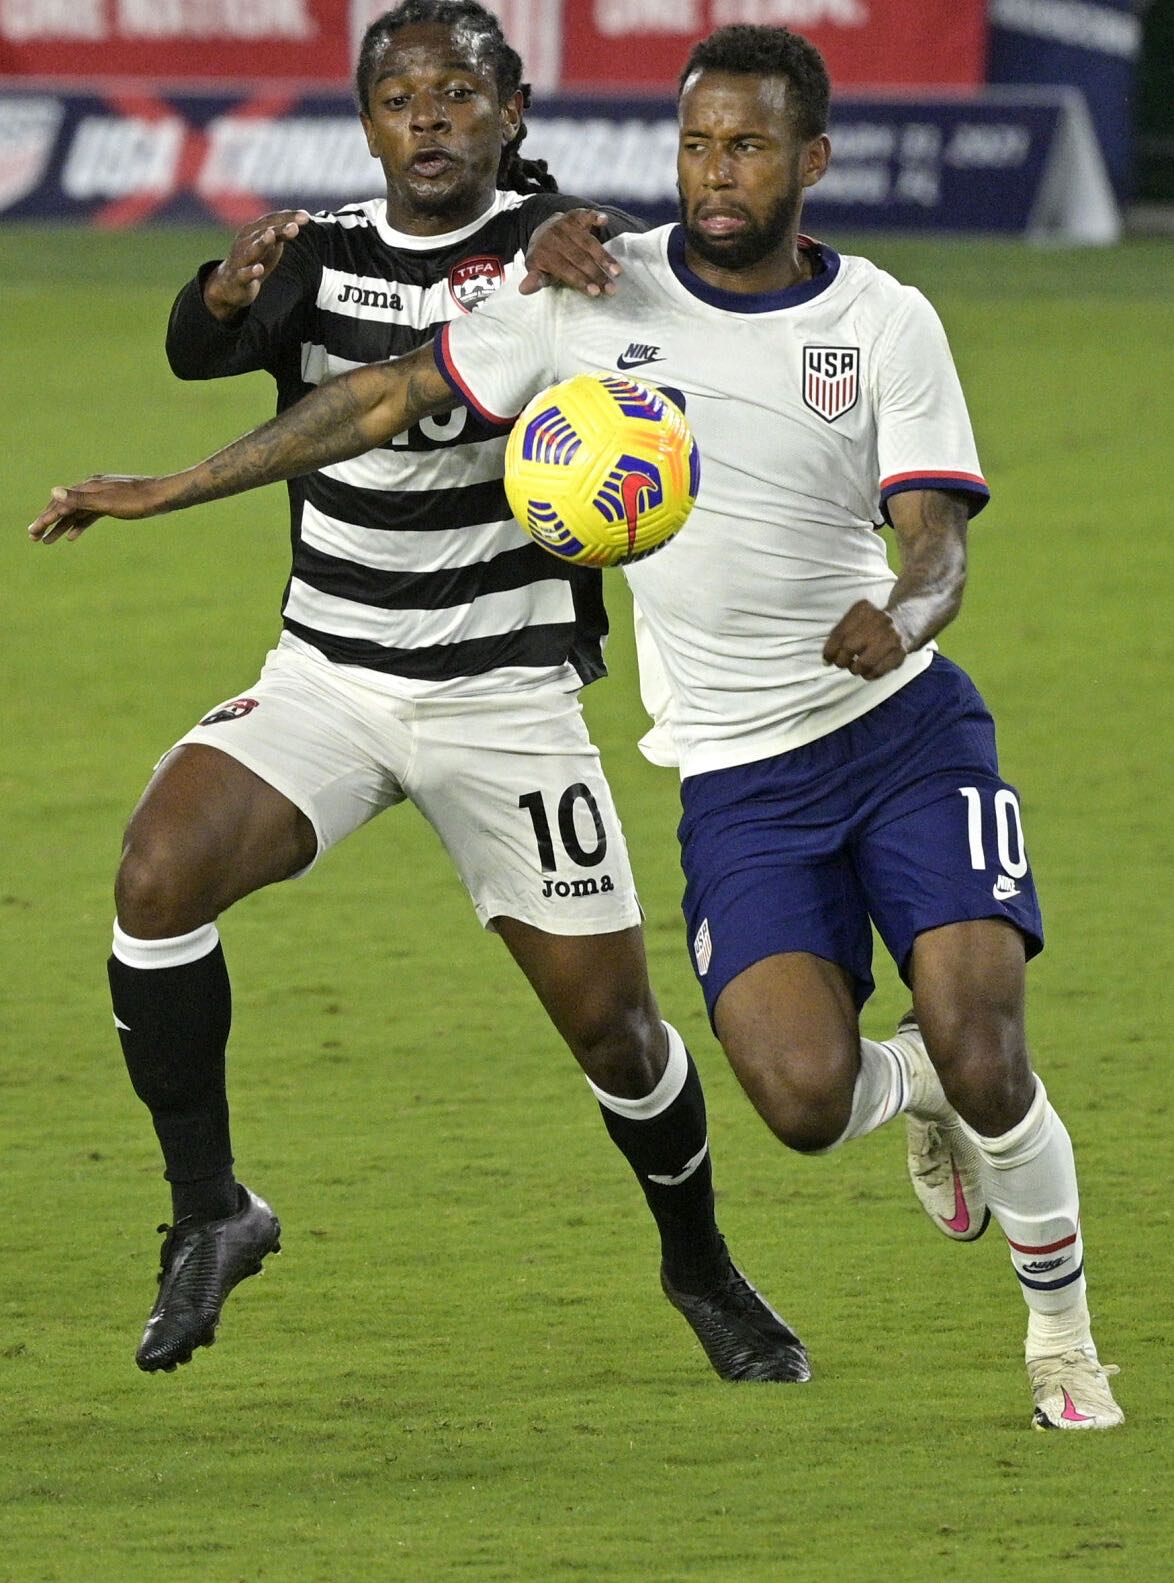 Photo: Trinidad and Tobago midfielder Duane Muckette (left) competes with USA midfielder Kellyn Acosta for the ball during international friendly action in Orlando on 31 January 2021. ...(Copyright AP Photo/Phelan M Ebenhack)